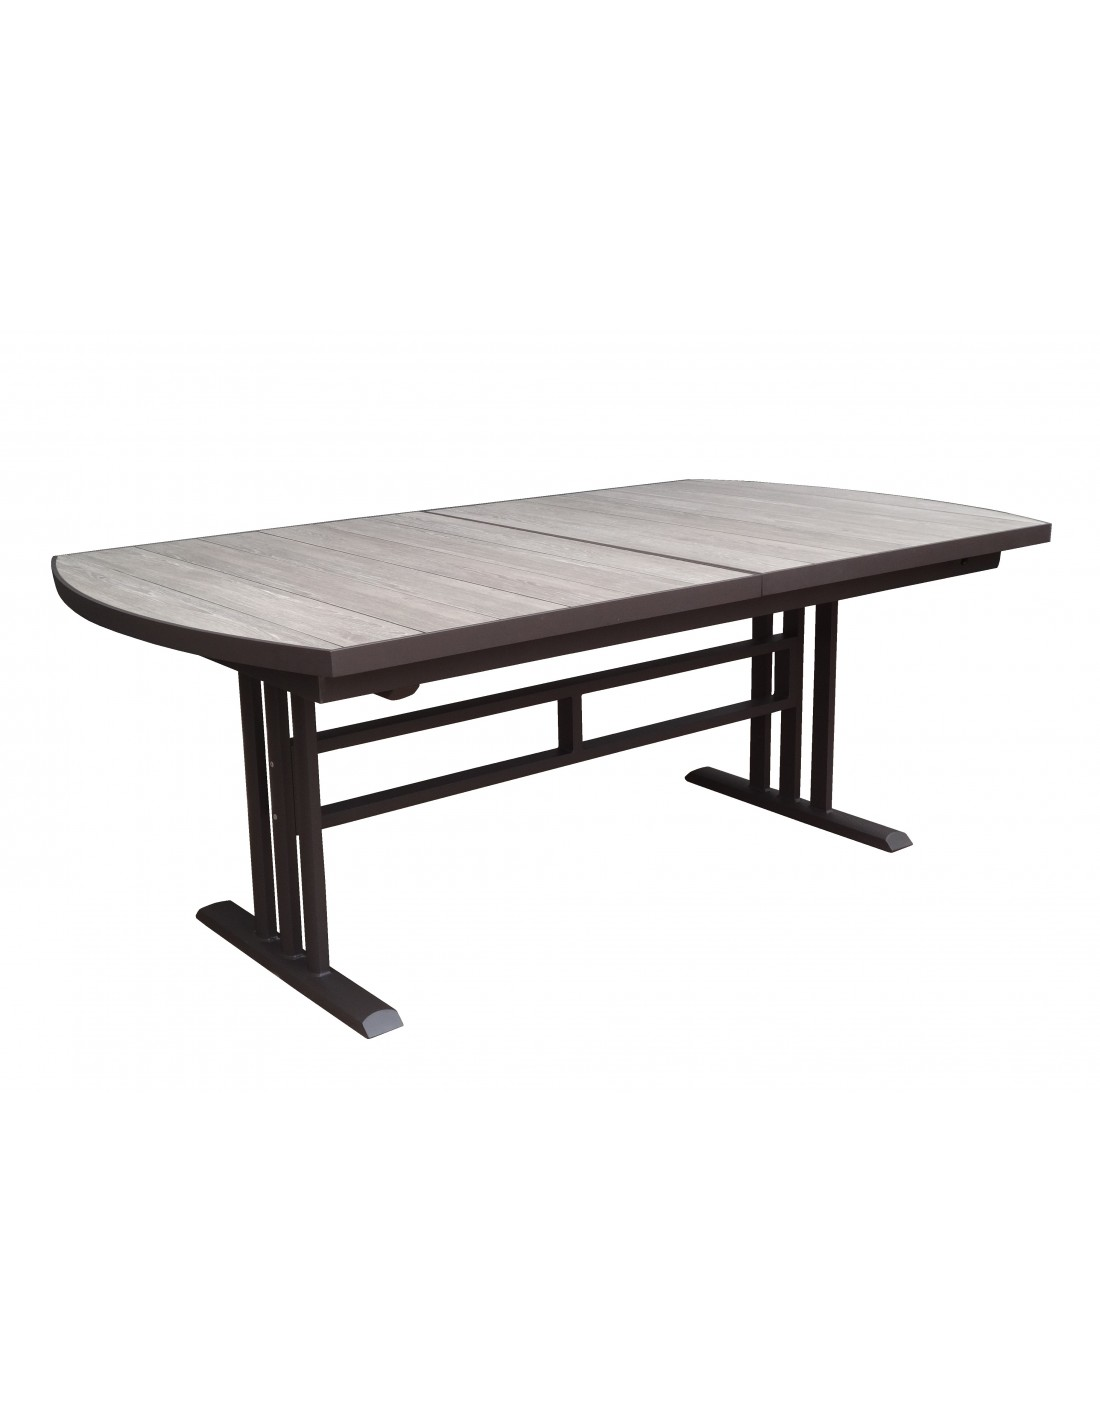 Table twig extensible aluminium marron plateau hpl bois - Table de jardin extensible aluminium ...